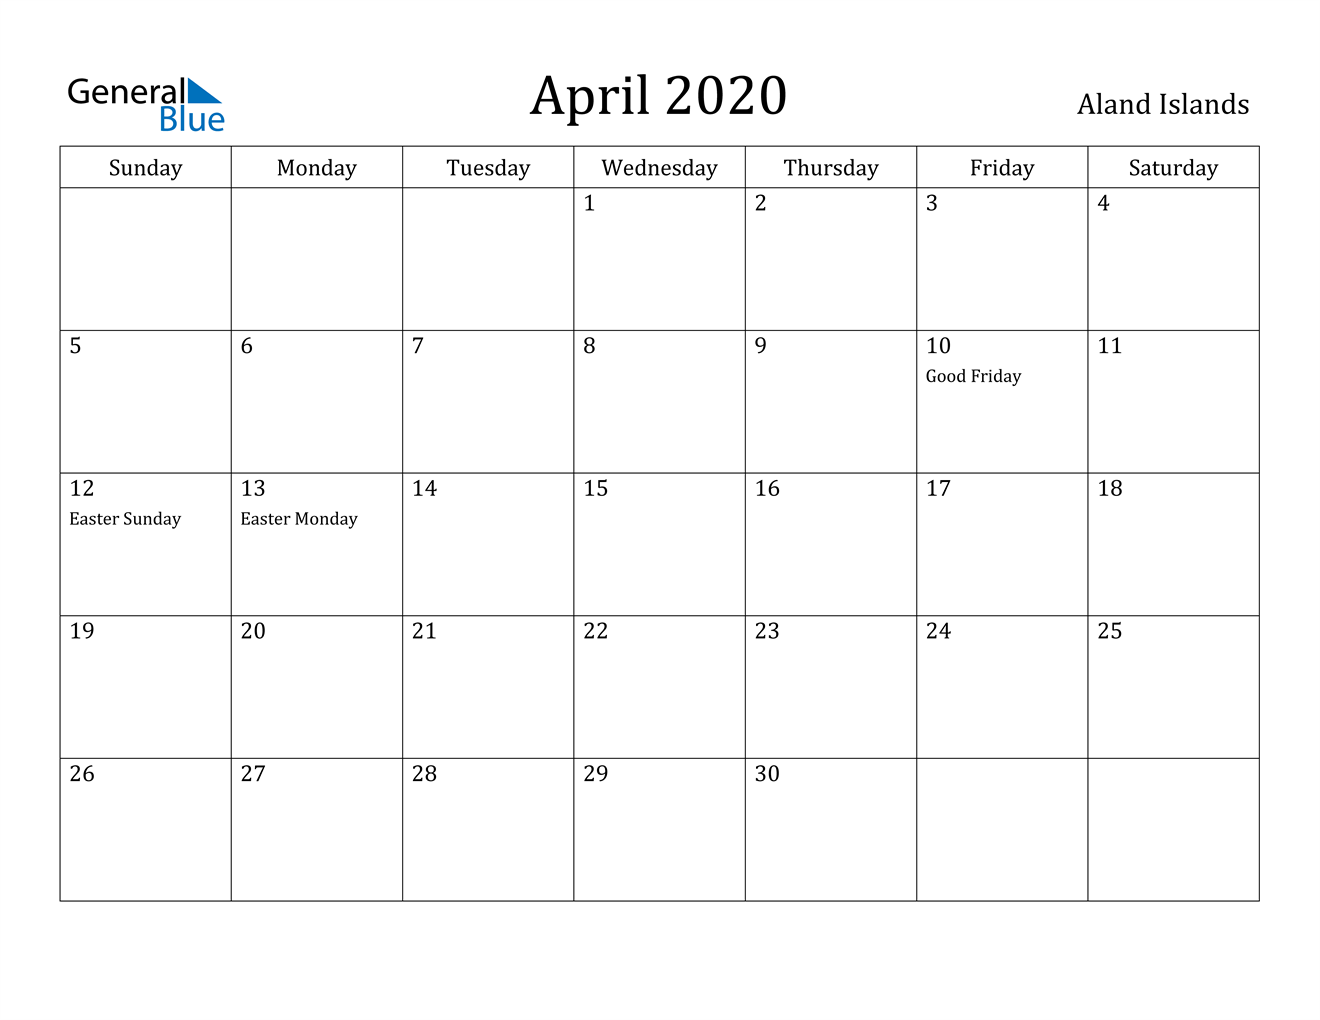 Image of April 2020 Aland Islands Calendar with Holidays Calendar